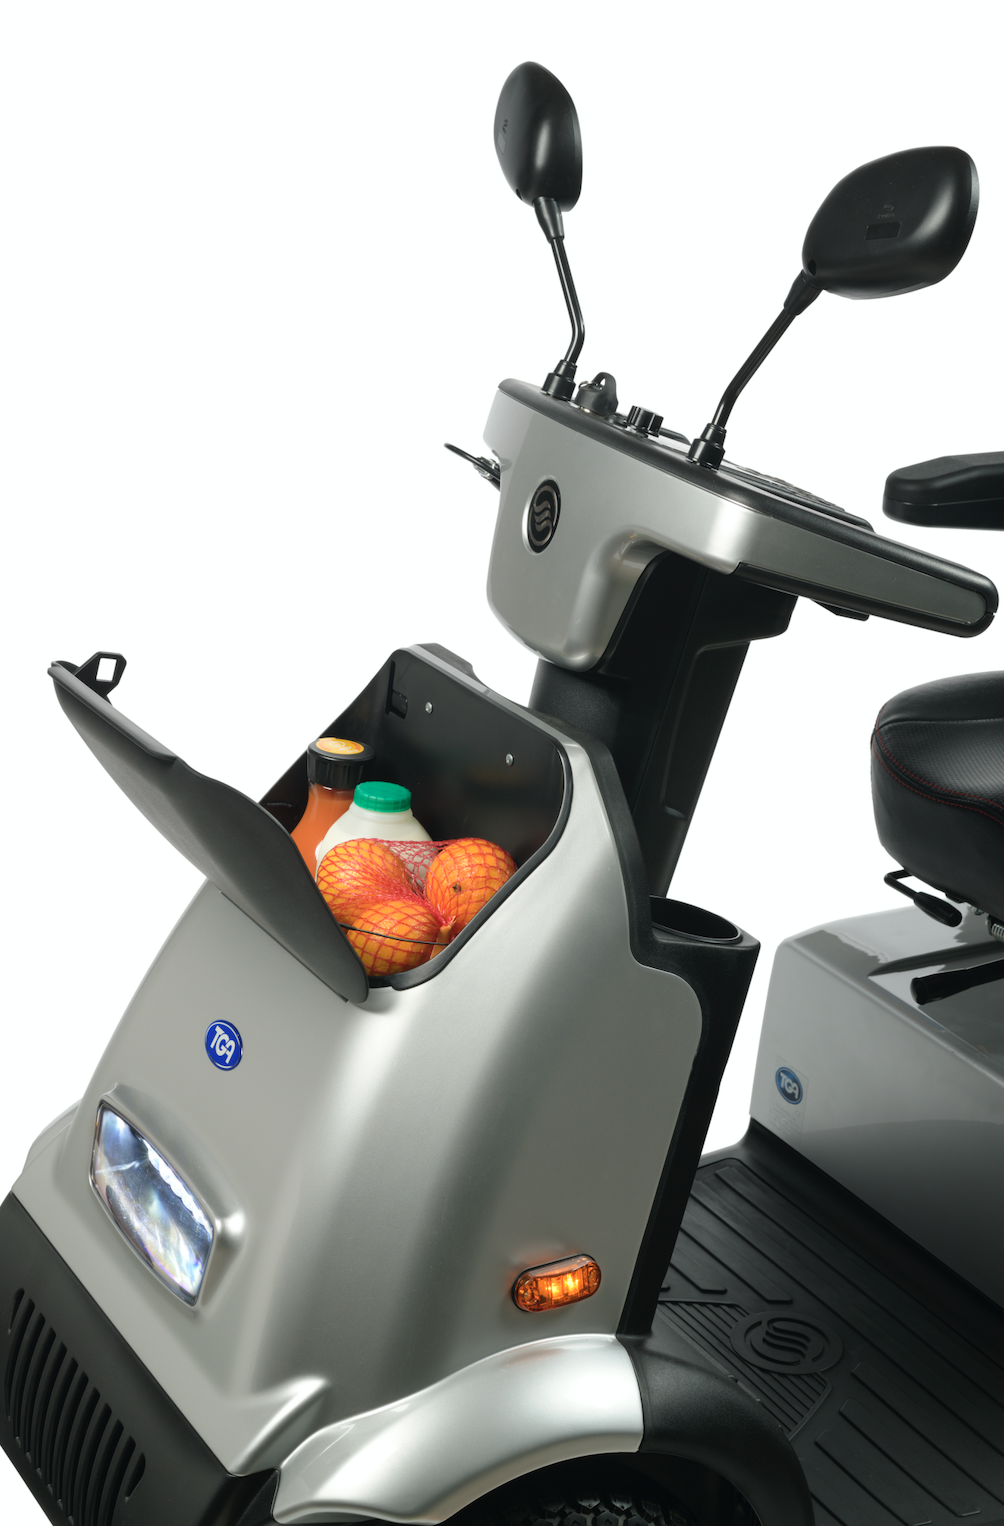 2020 TGA breeze midi 4 mobility scooter side